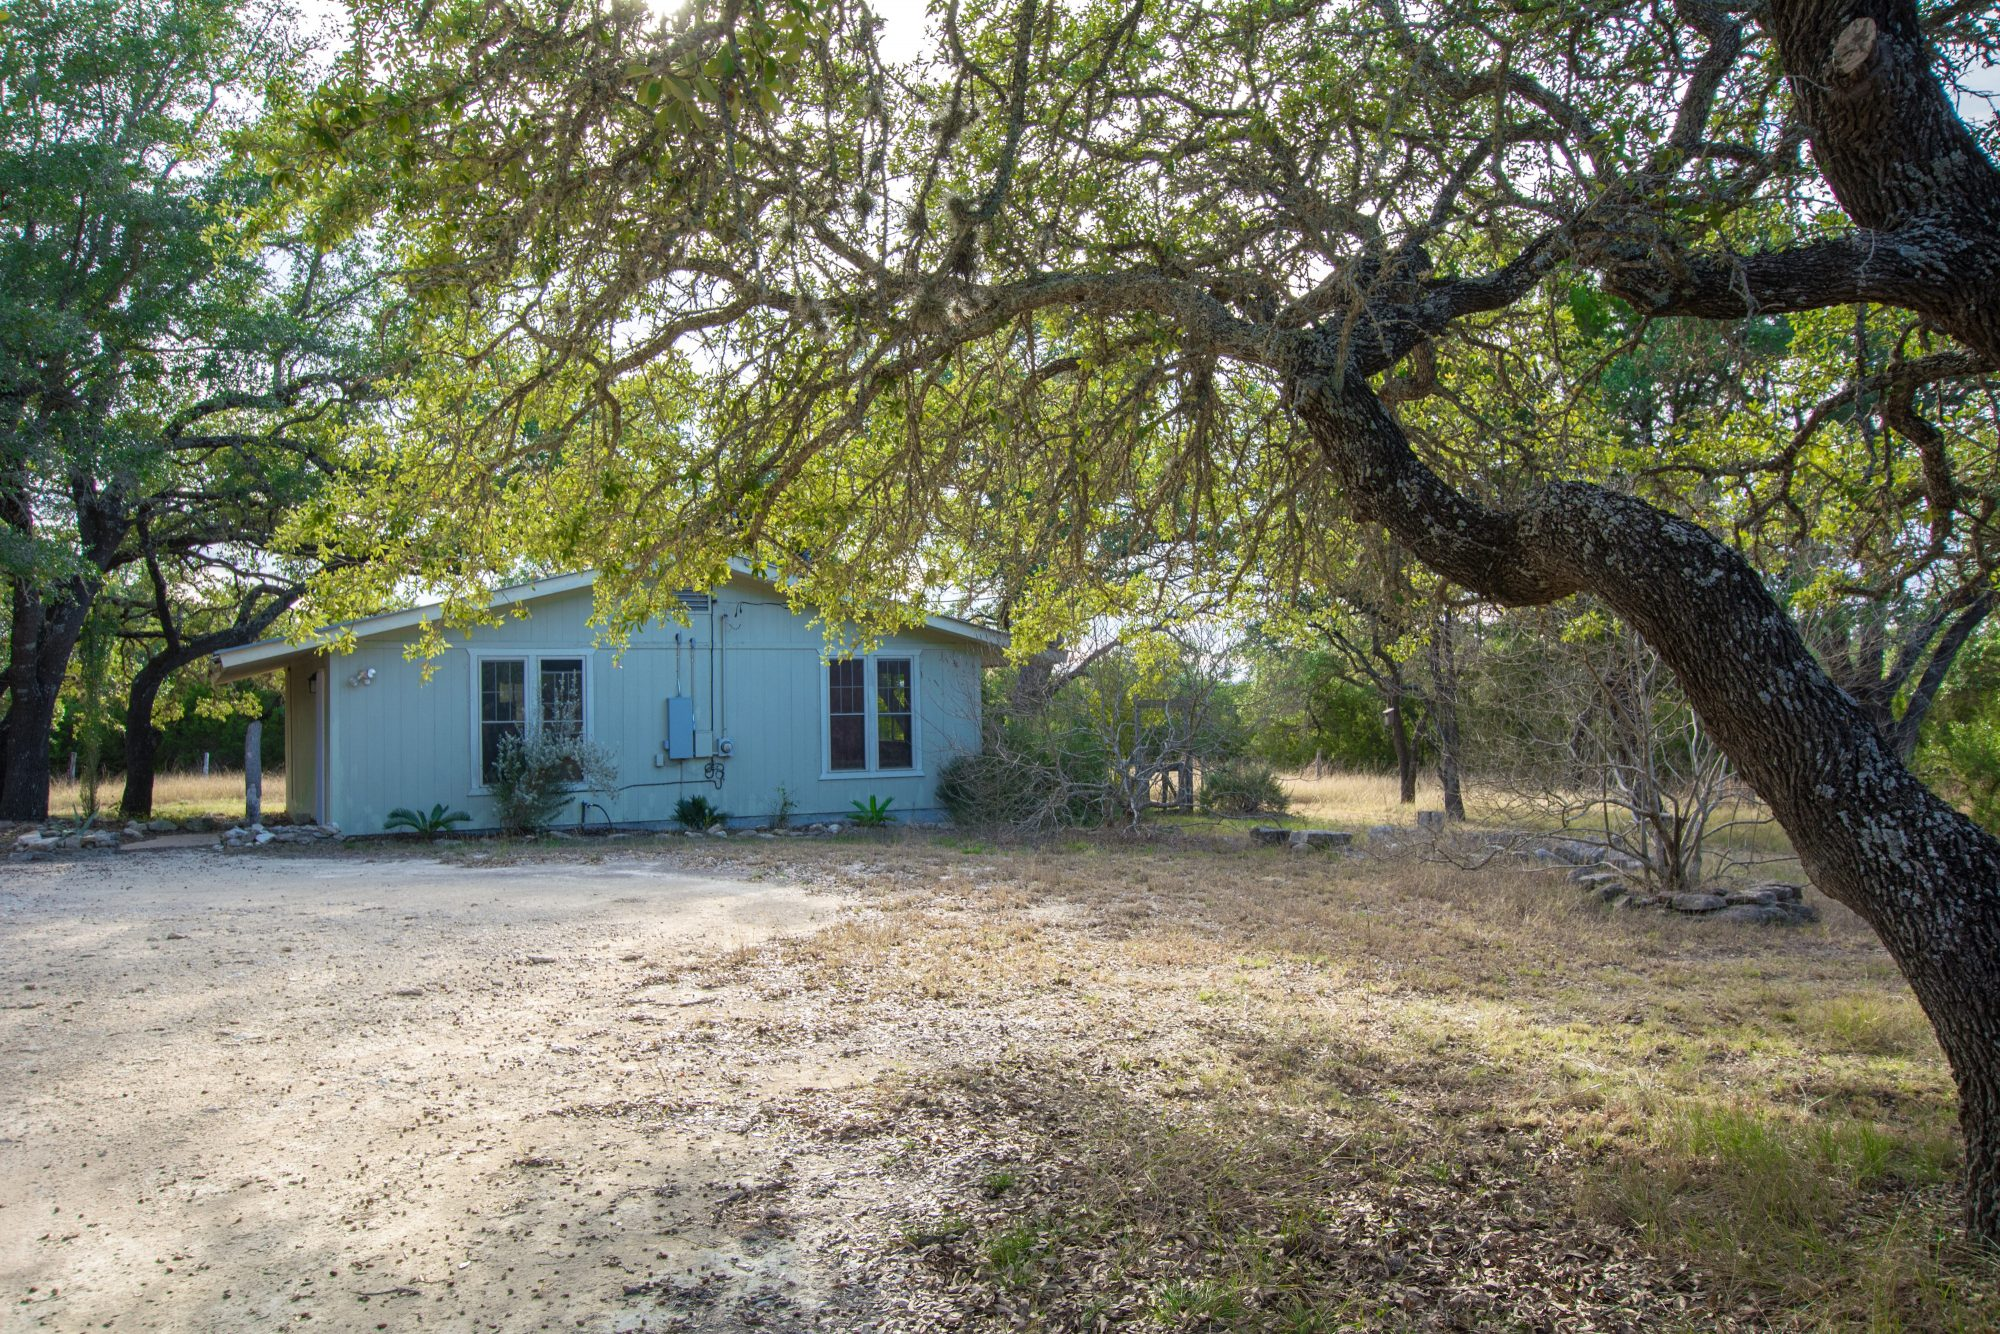 A Second Original Ranch Home on the Property